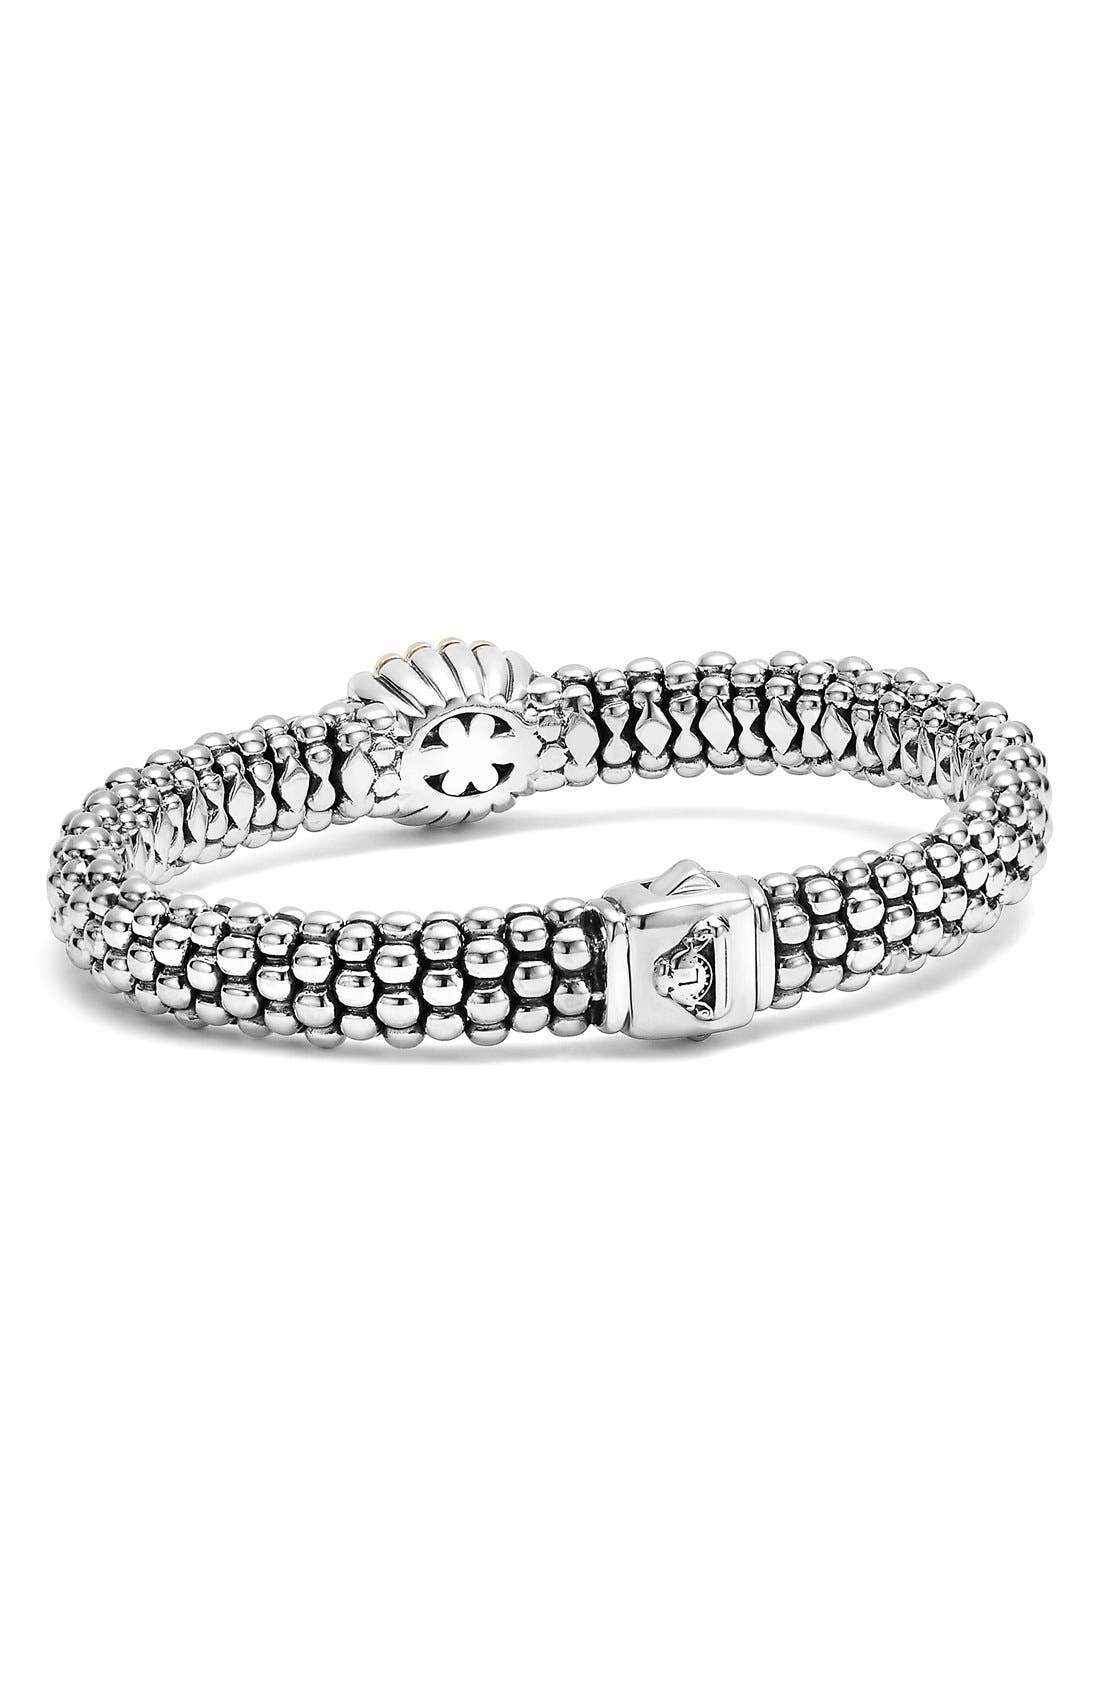 'Caviar' Diamond Bracelet,                             Alternate thumbnail 2, color,                             040